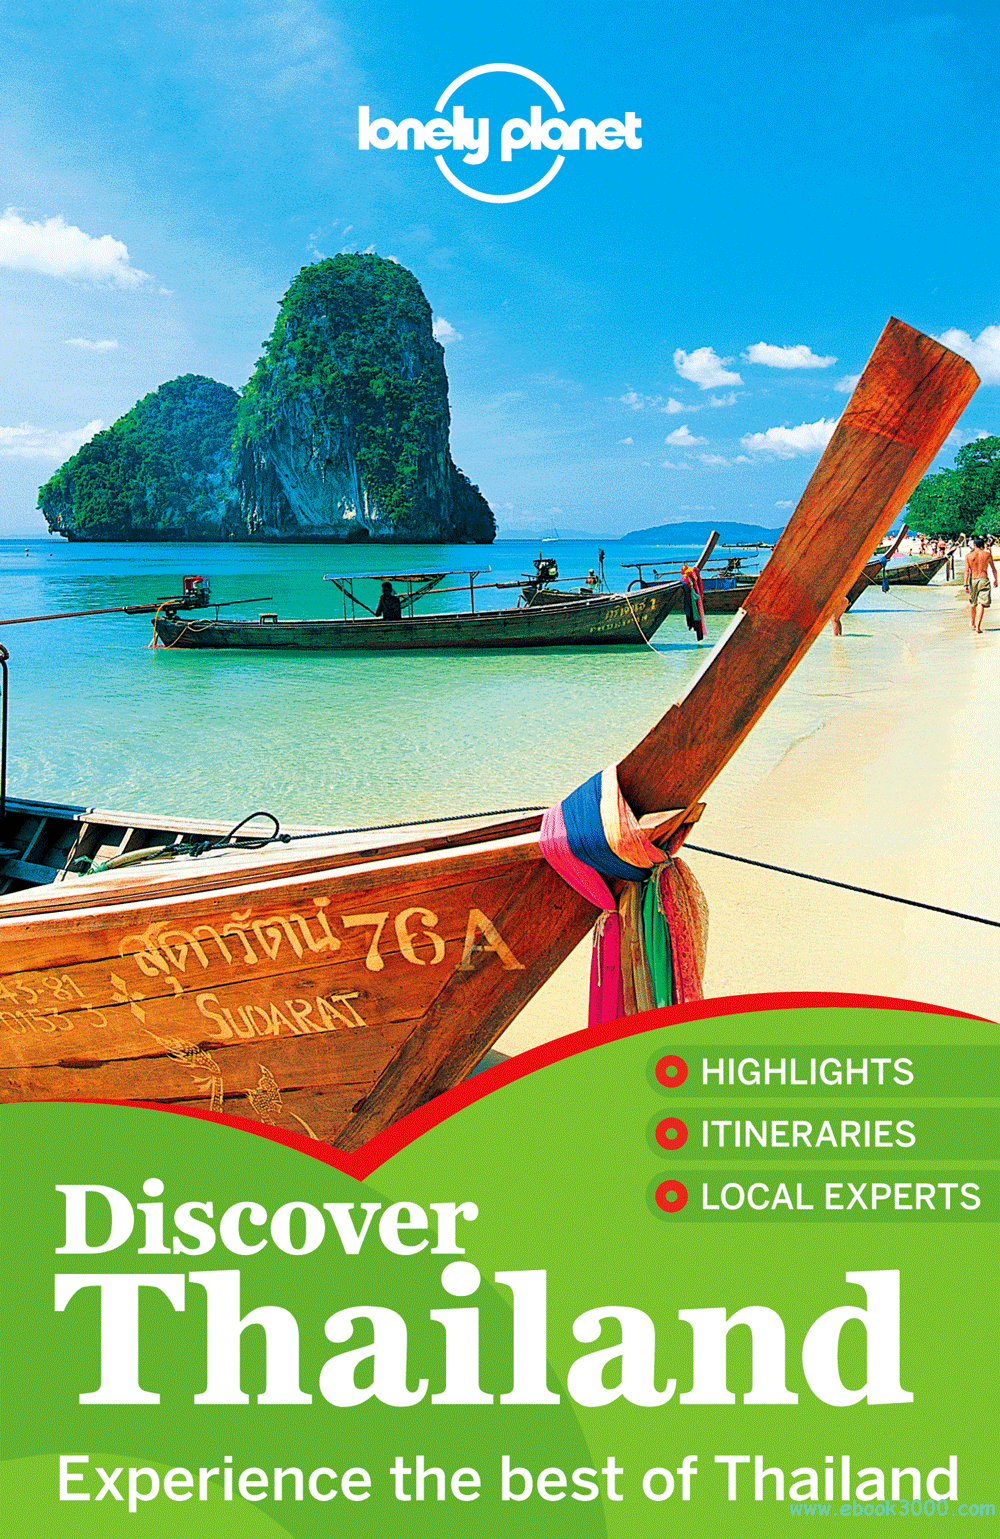 Discover Thailand (Country Guide), 2 edition free download